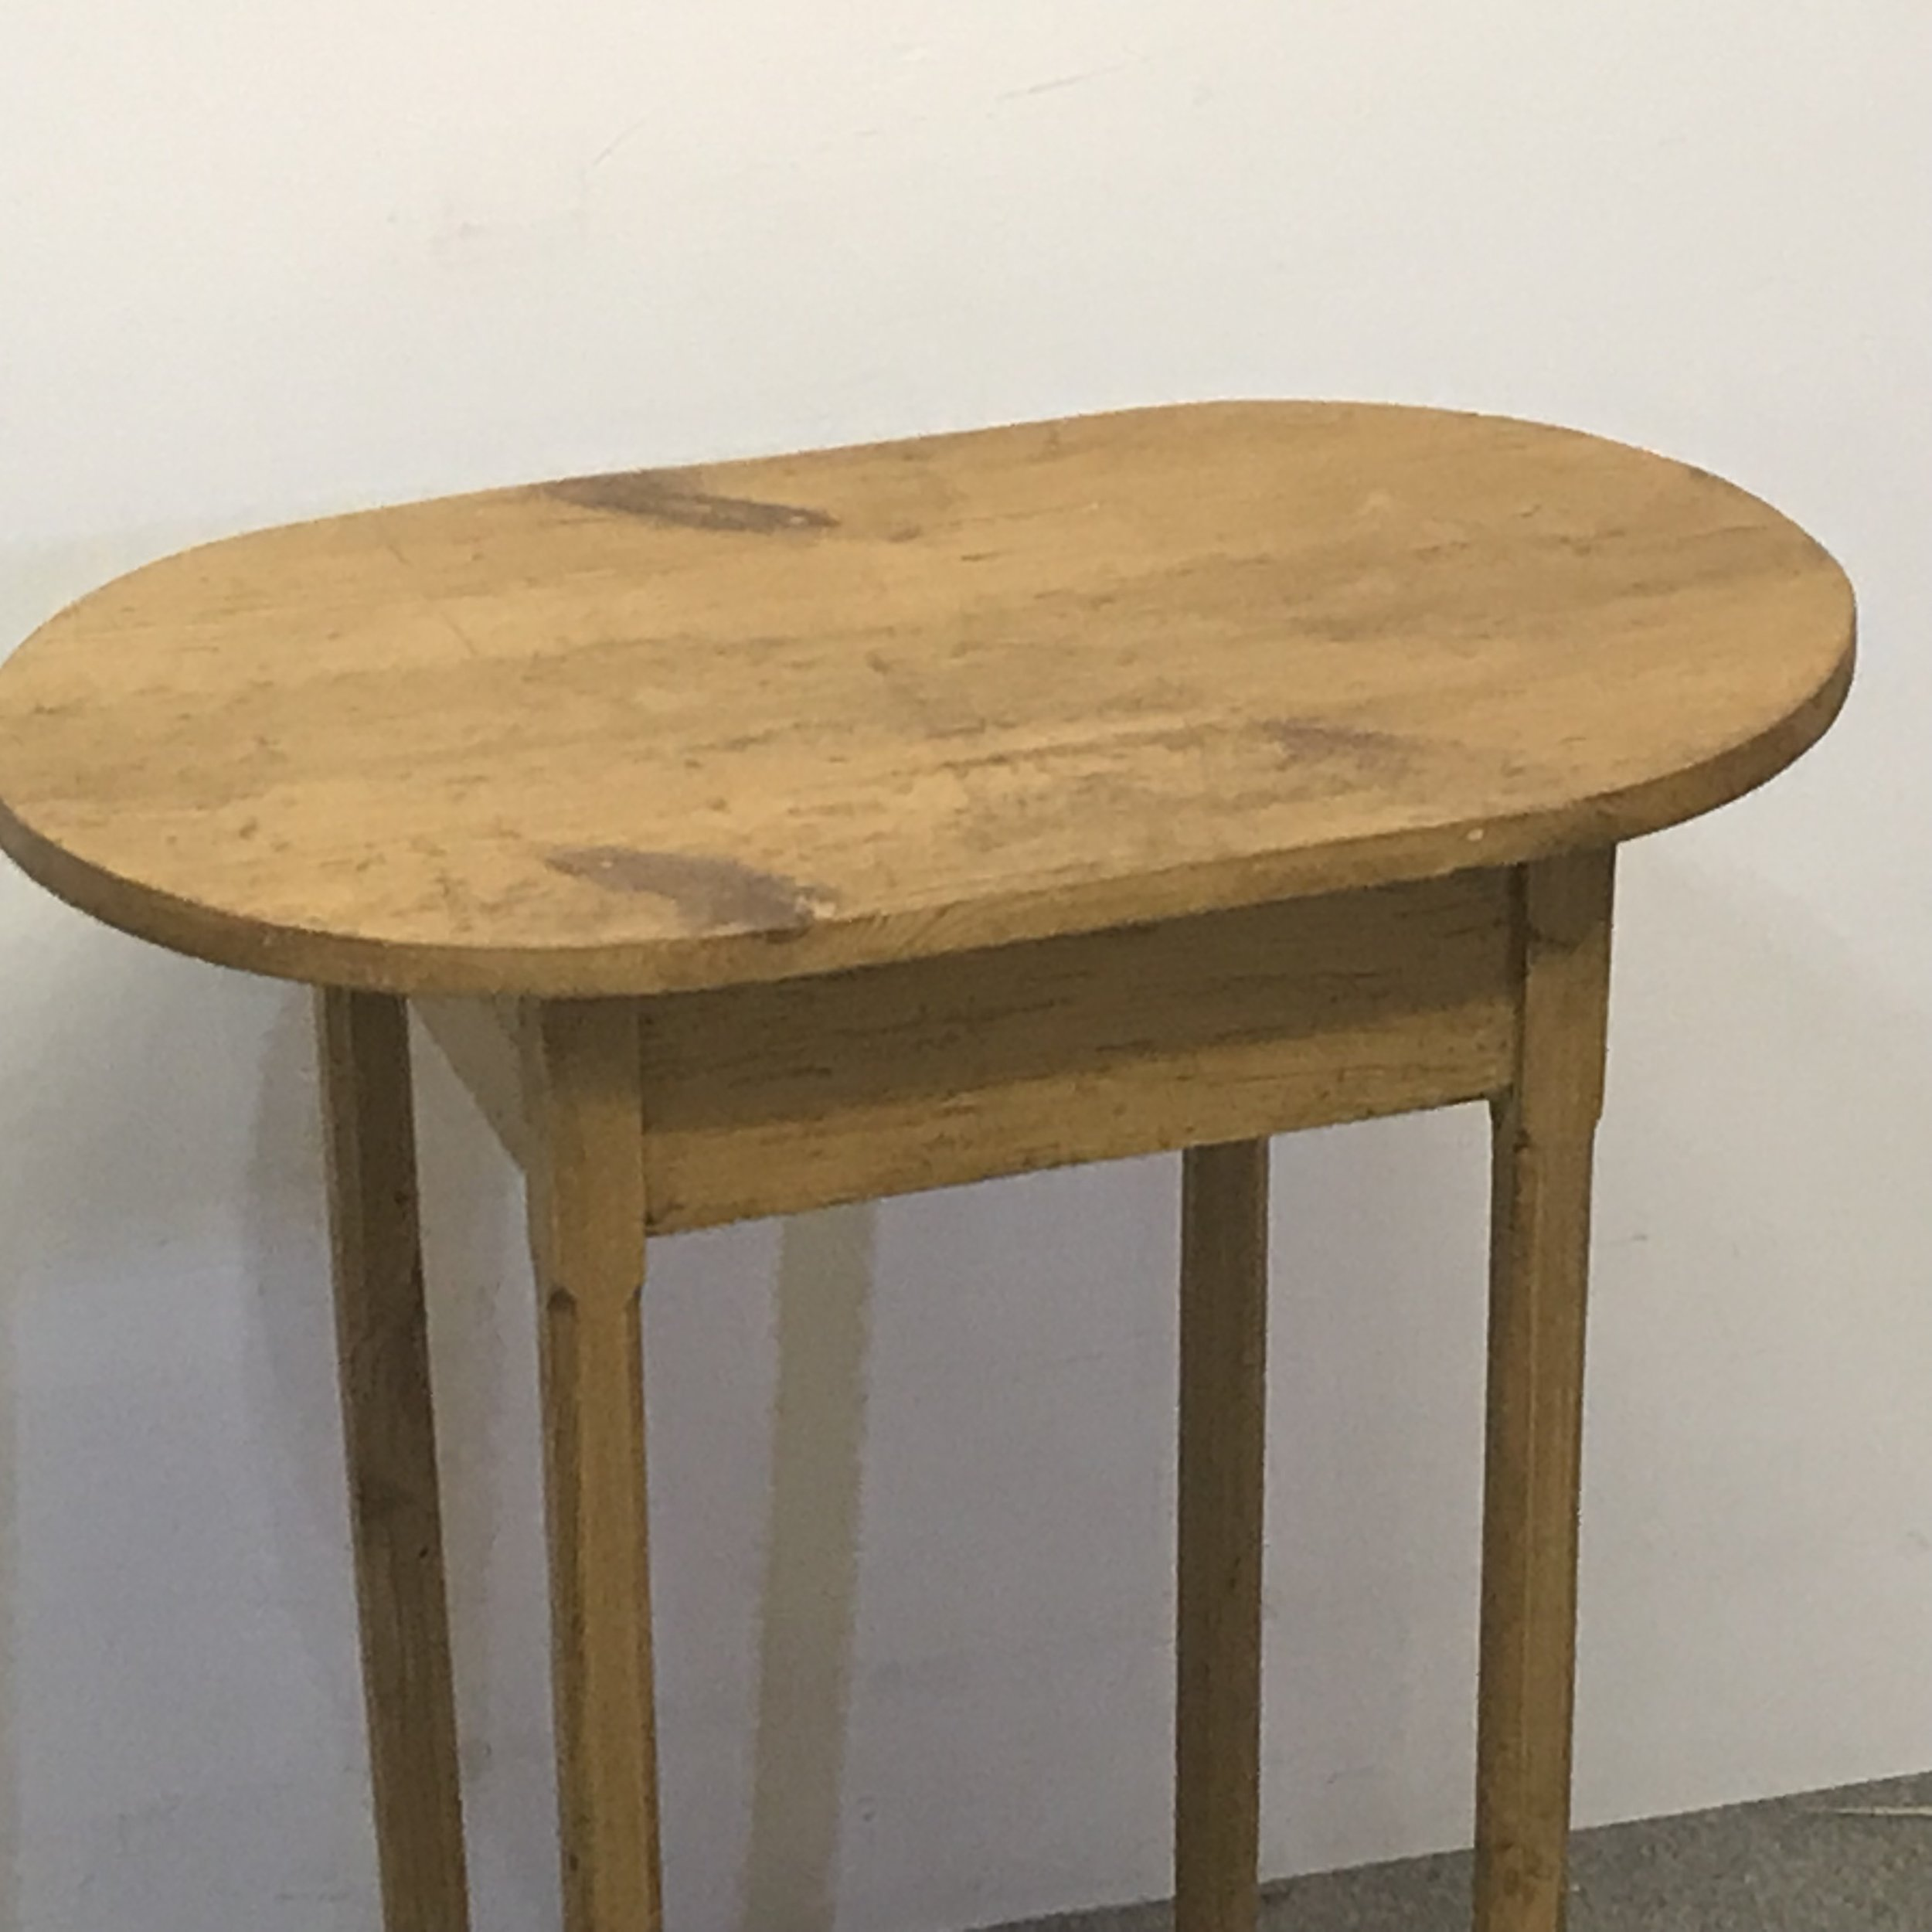 Small oval pine table made from old pine floorboards